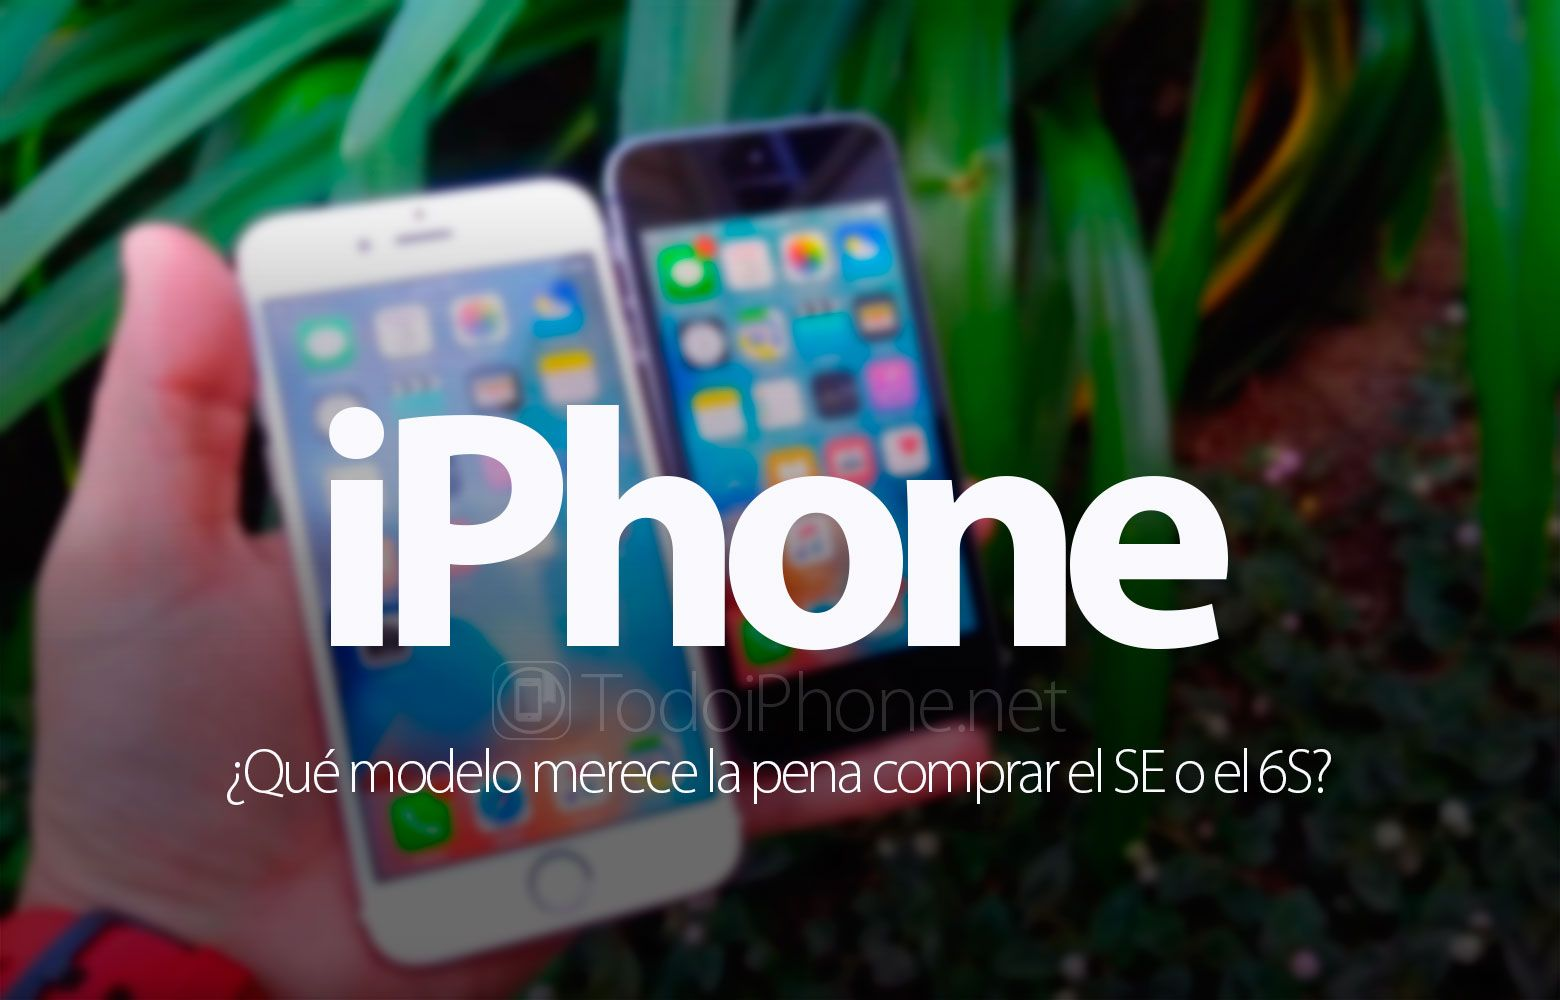 iPhone SE vs iPhone 6s ¿Cuál comprar? http://blgs.co/klC14e